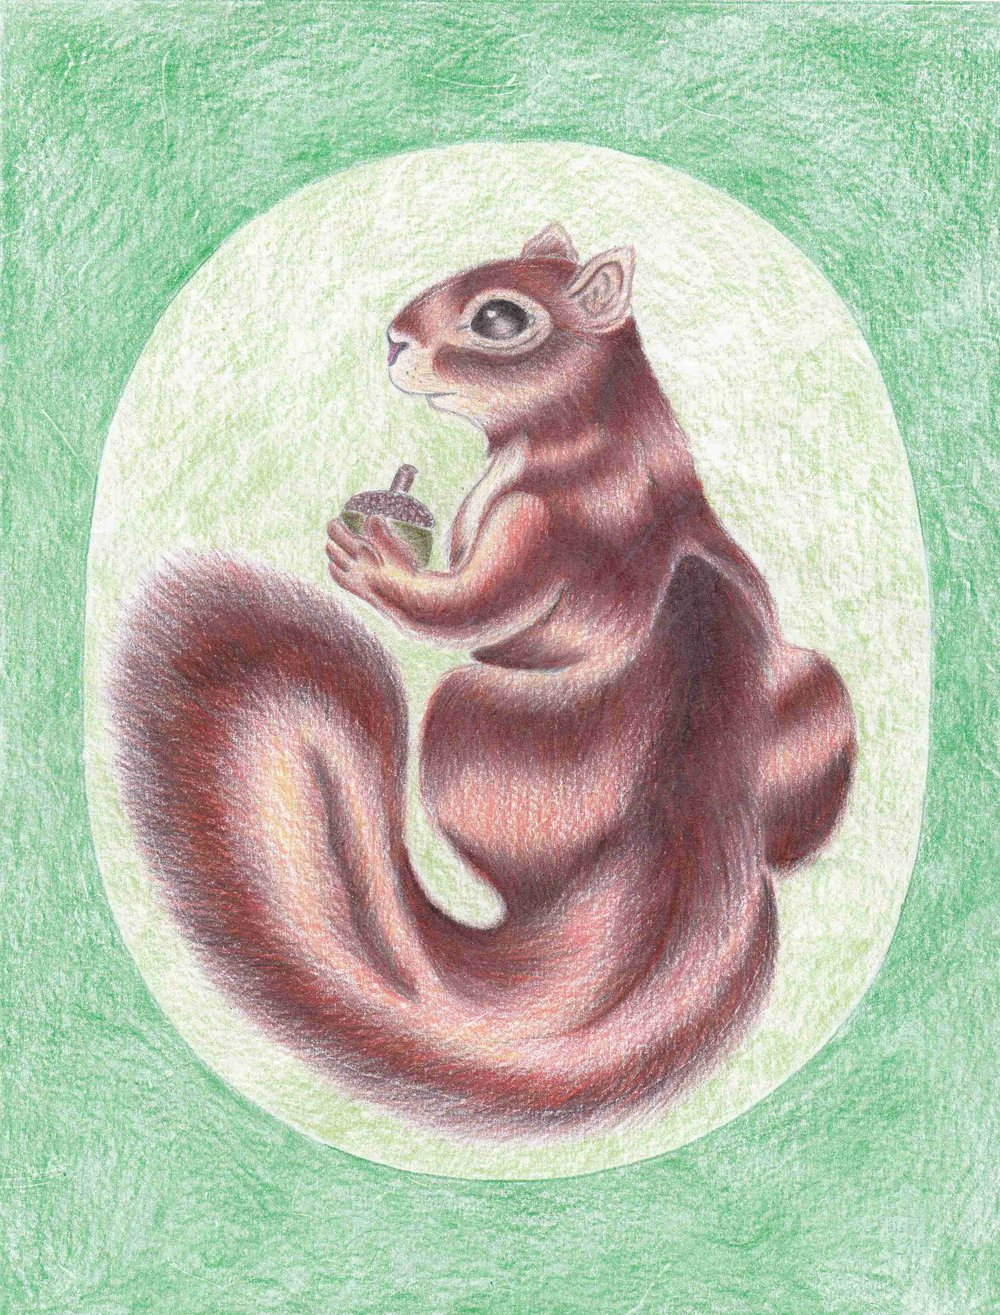 squirrel drawing by William J. Cumber-IMG_20180624_0001 - Copy.jpg